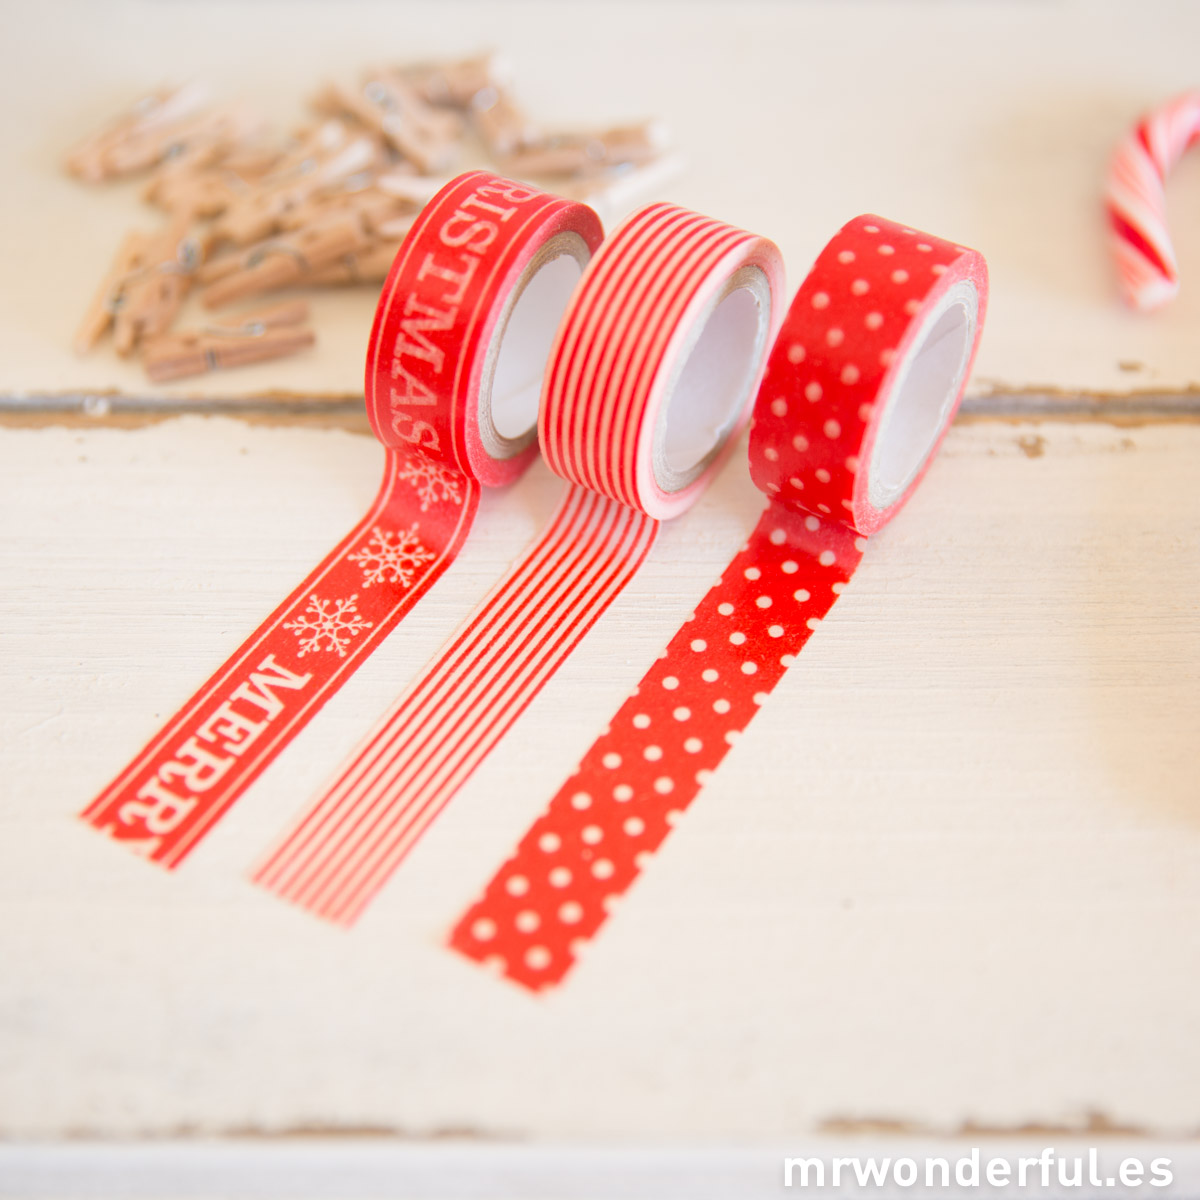 mrwonderful_RWX-WASHI-set-3-washi-tapes-merry-christmas-7